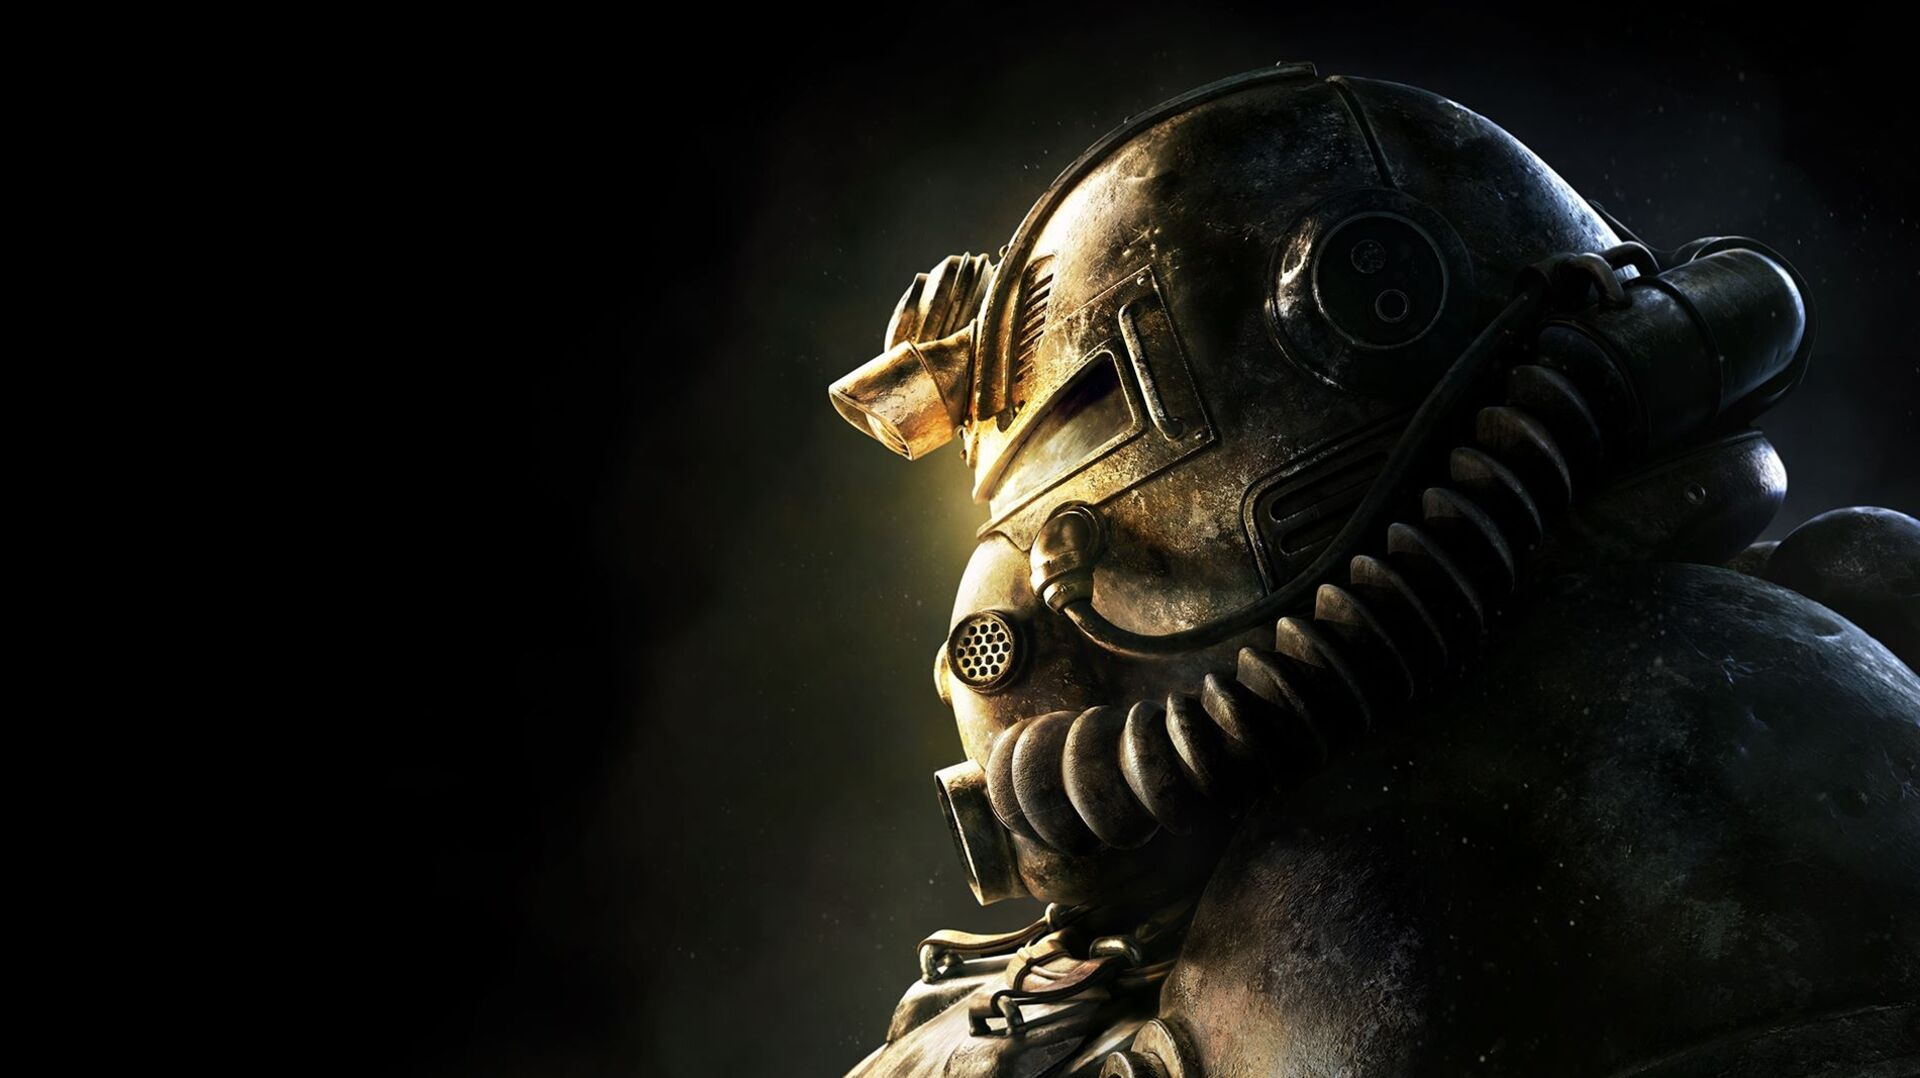 Bethesda's Fallout 76 refund policy causes confusion, as lawyers